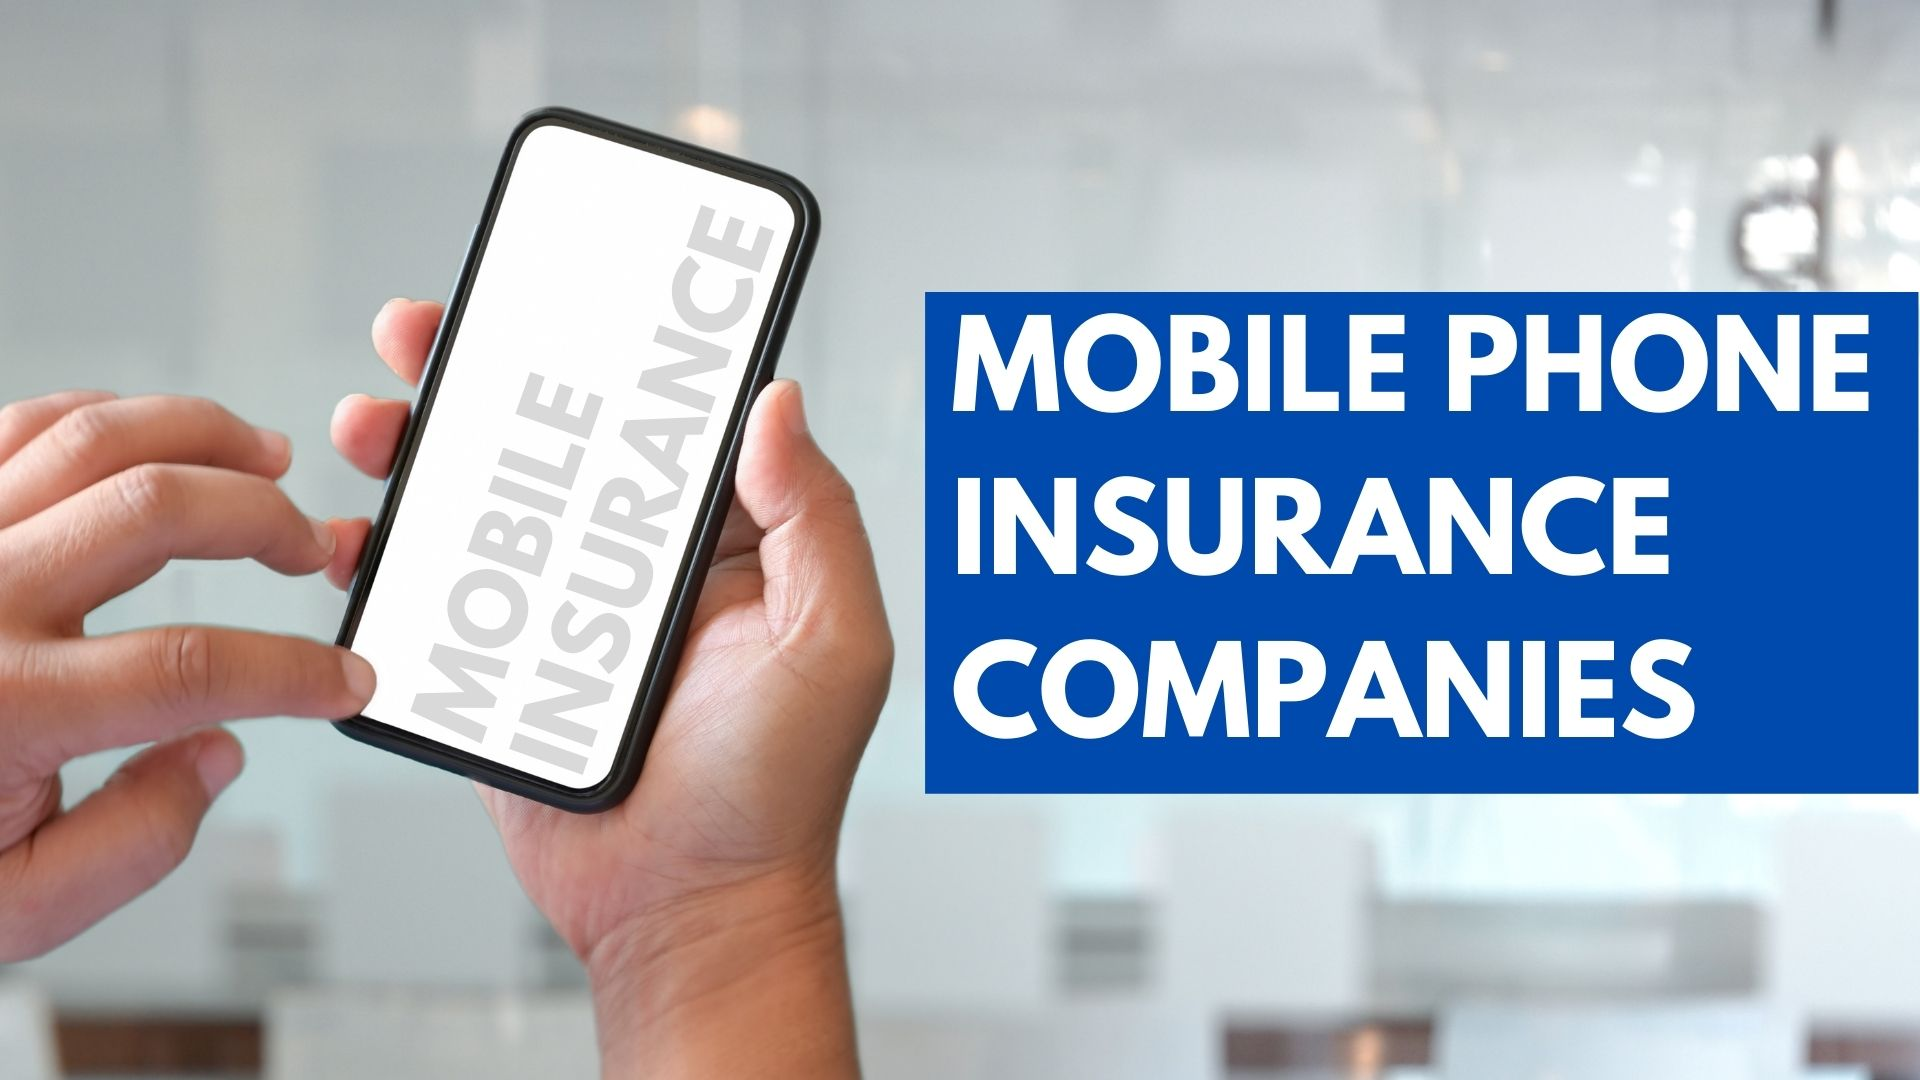 mobile phone insurance companies